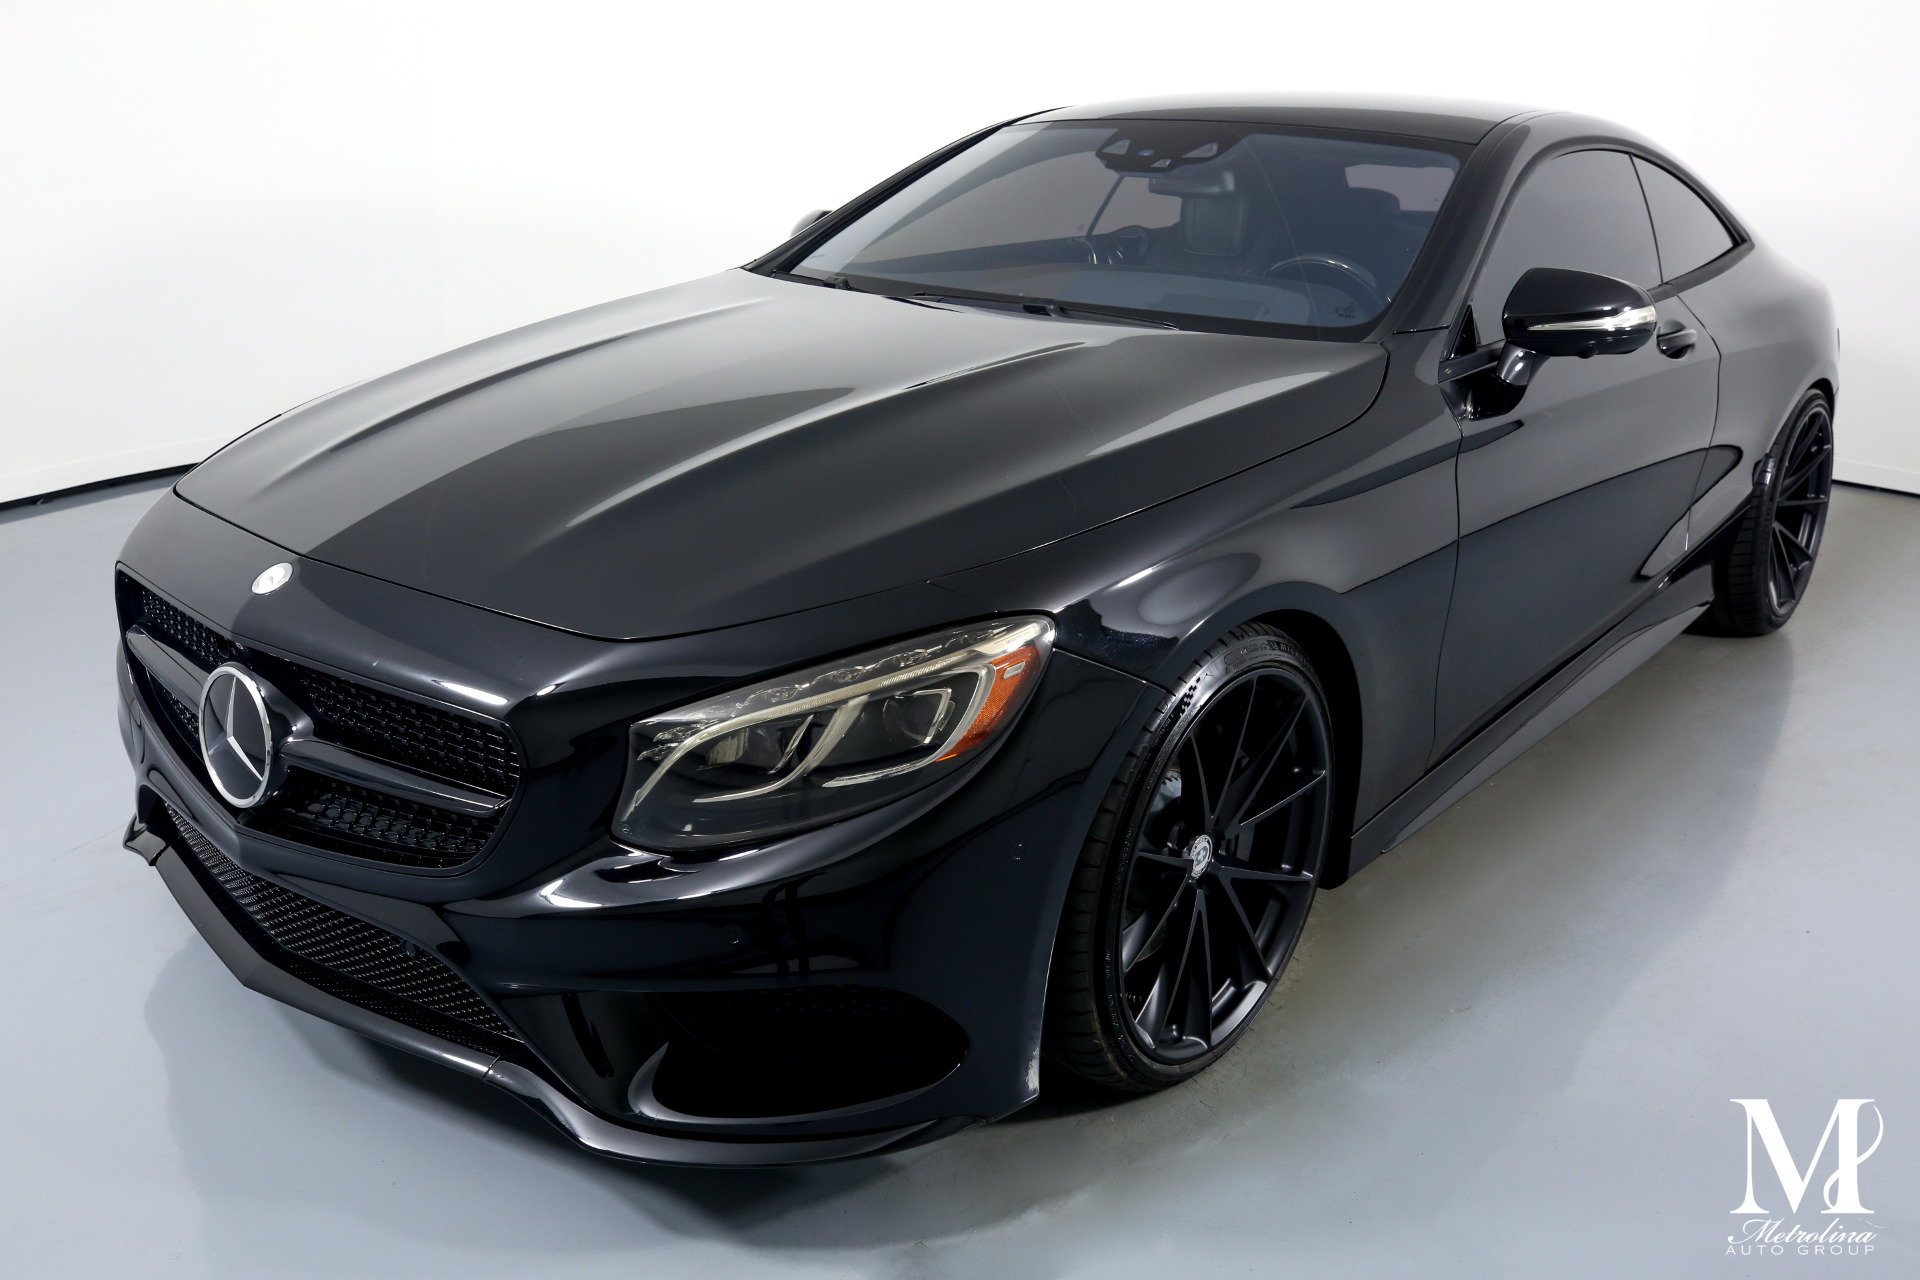 Used 2016 Mercedes-Benz S-Class S 550 4MATIC for sale $67,456 at Metrolina Auto Group in Charlotte NC 28217 - 4